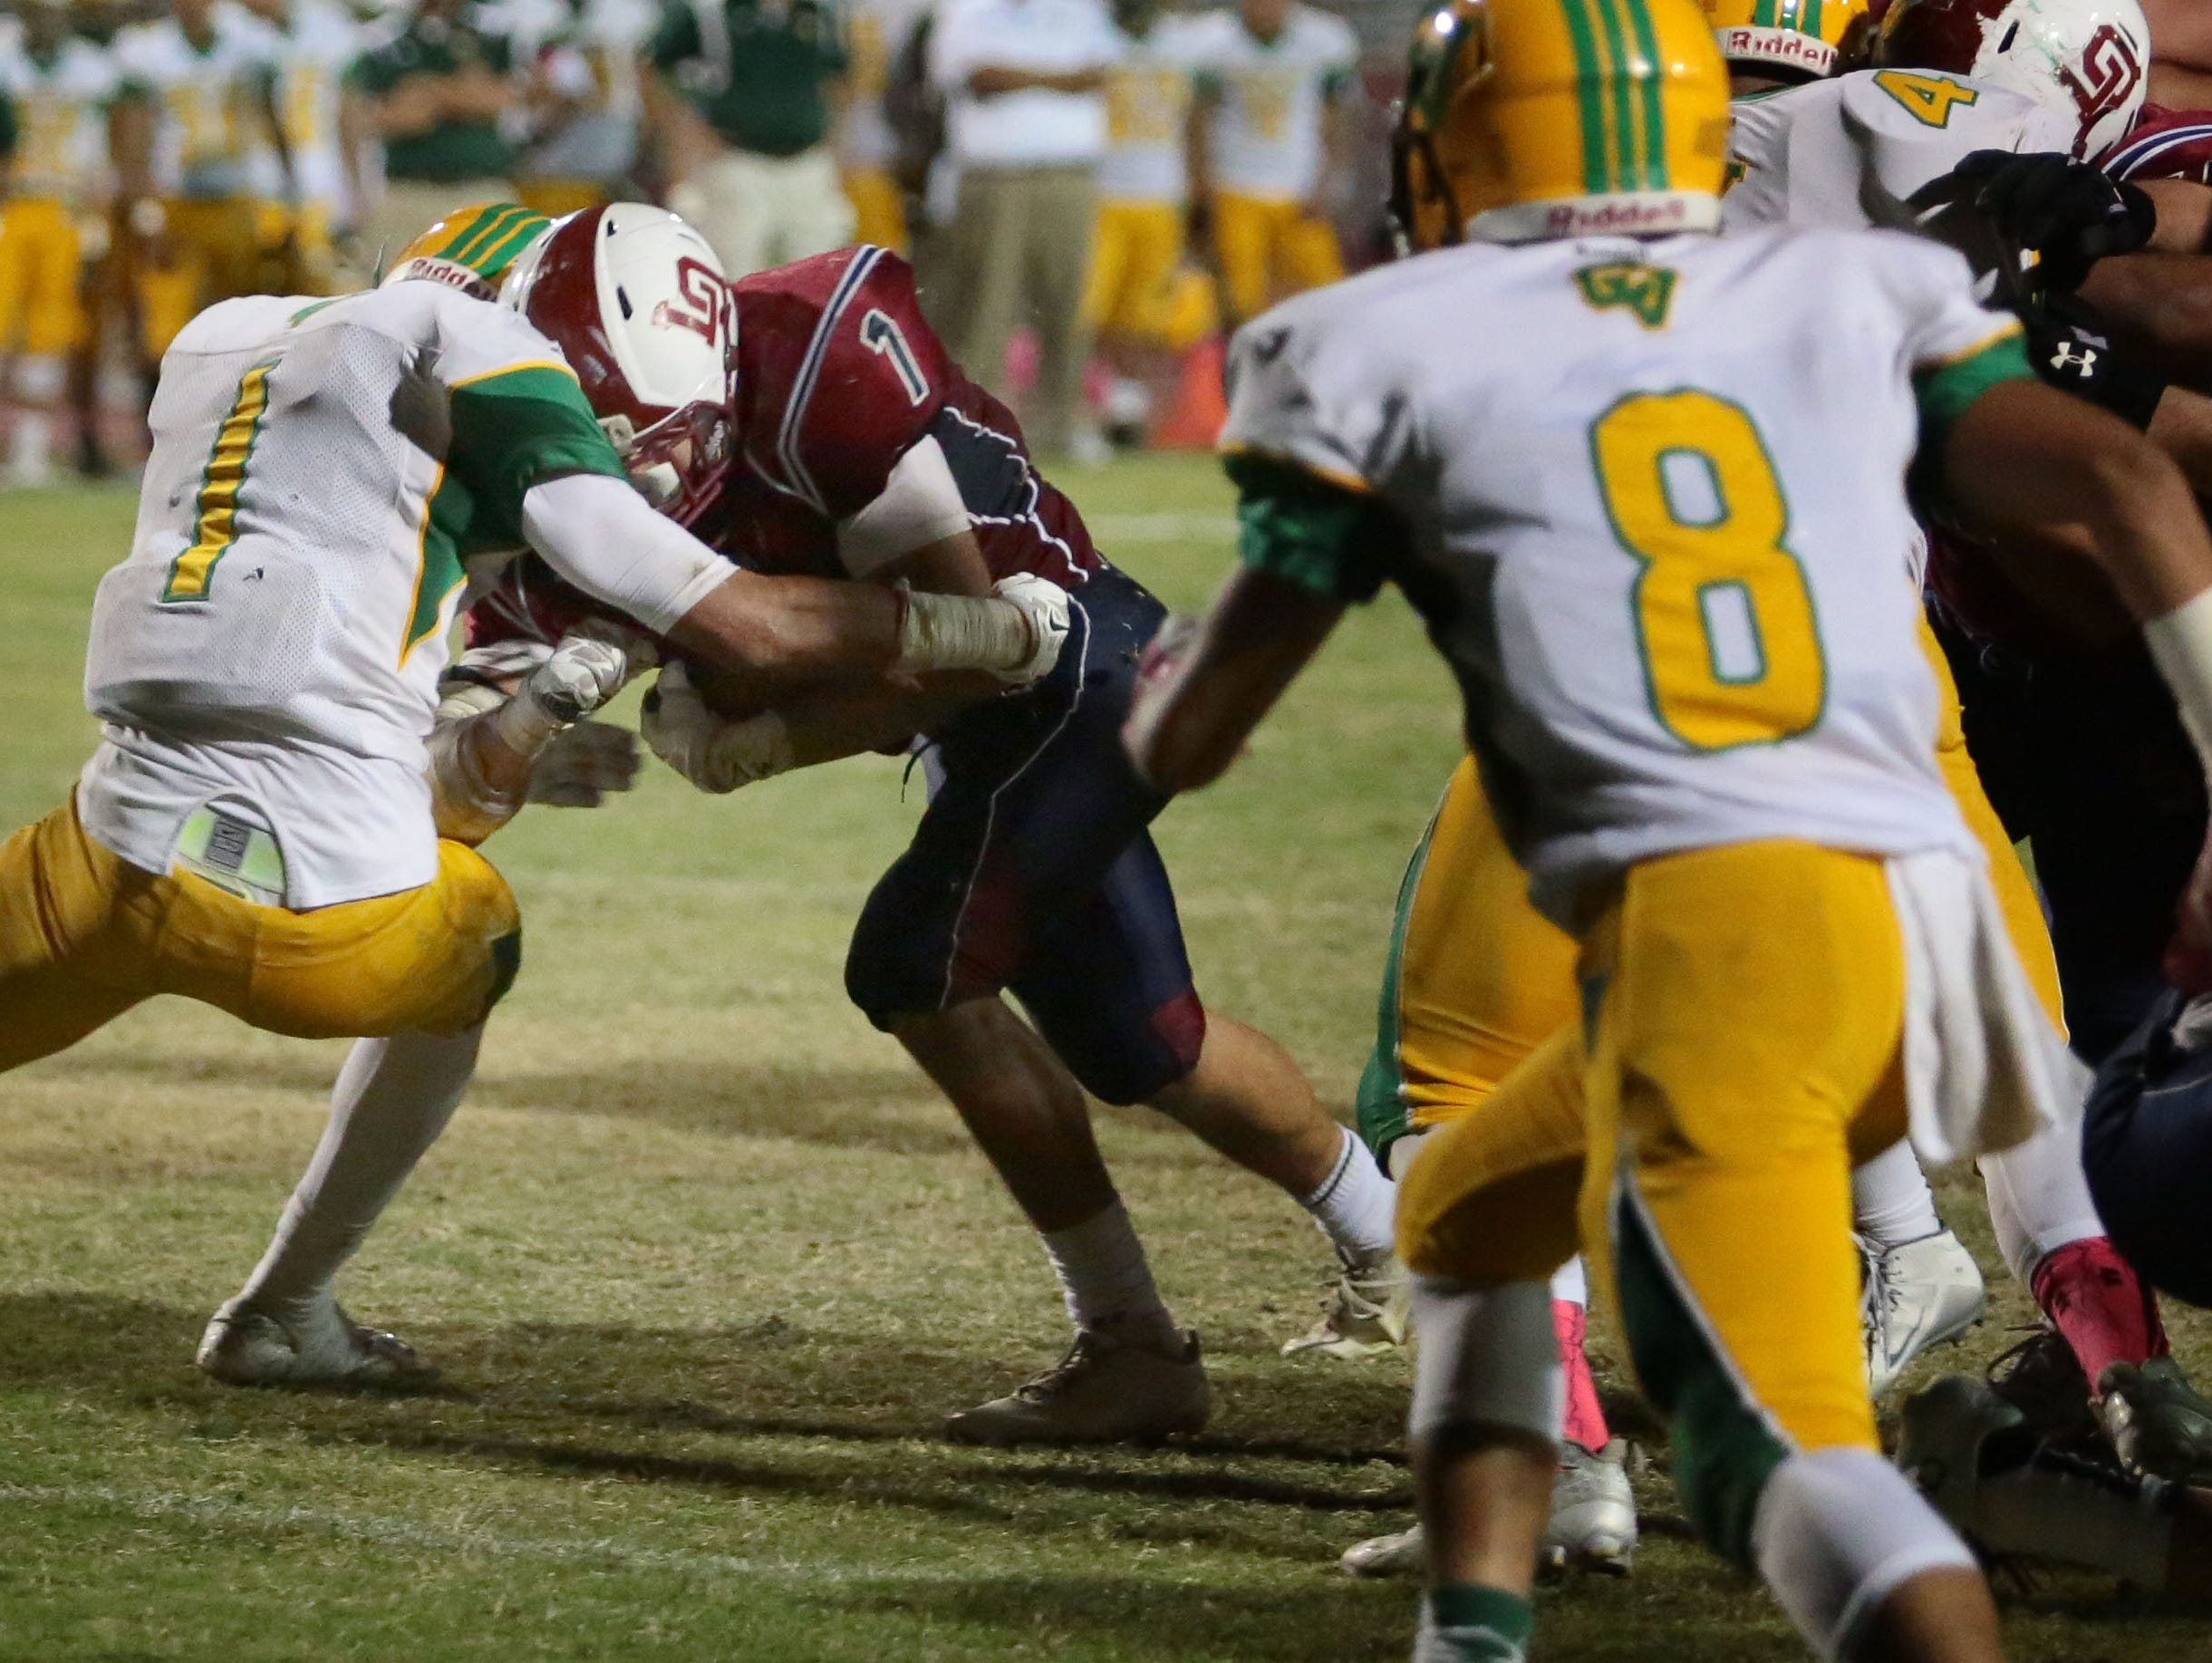 La Quinta's Benji Cordova carries the ball for a 3 yard touchdown against Coachella Valley in the 2nd quarter on Friday in La Quinta.